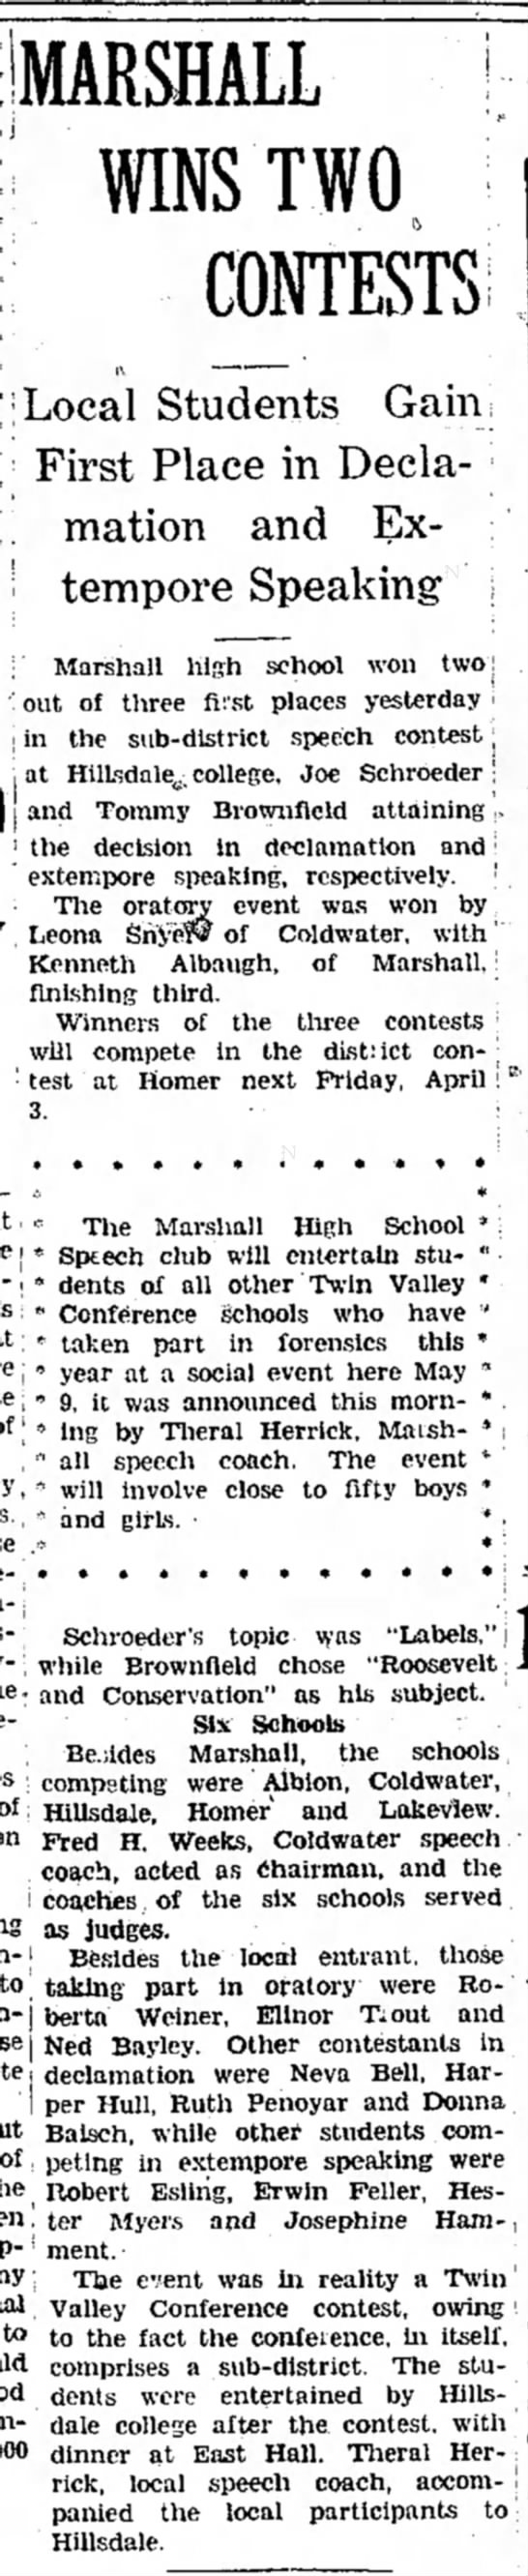 Weeks - Fred H. Marshall Evening Chronicle (Marshall, Michigan) 27 March 1936 p 1 - J MARSHALL ! WINS TWO. CONTESTS; Local Students...